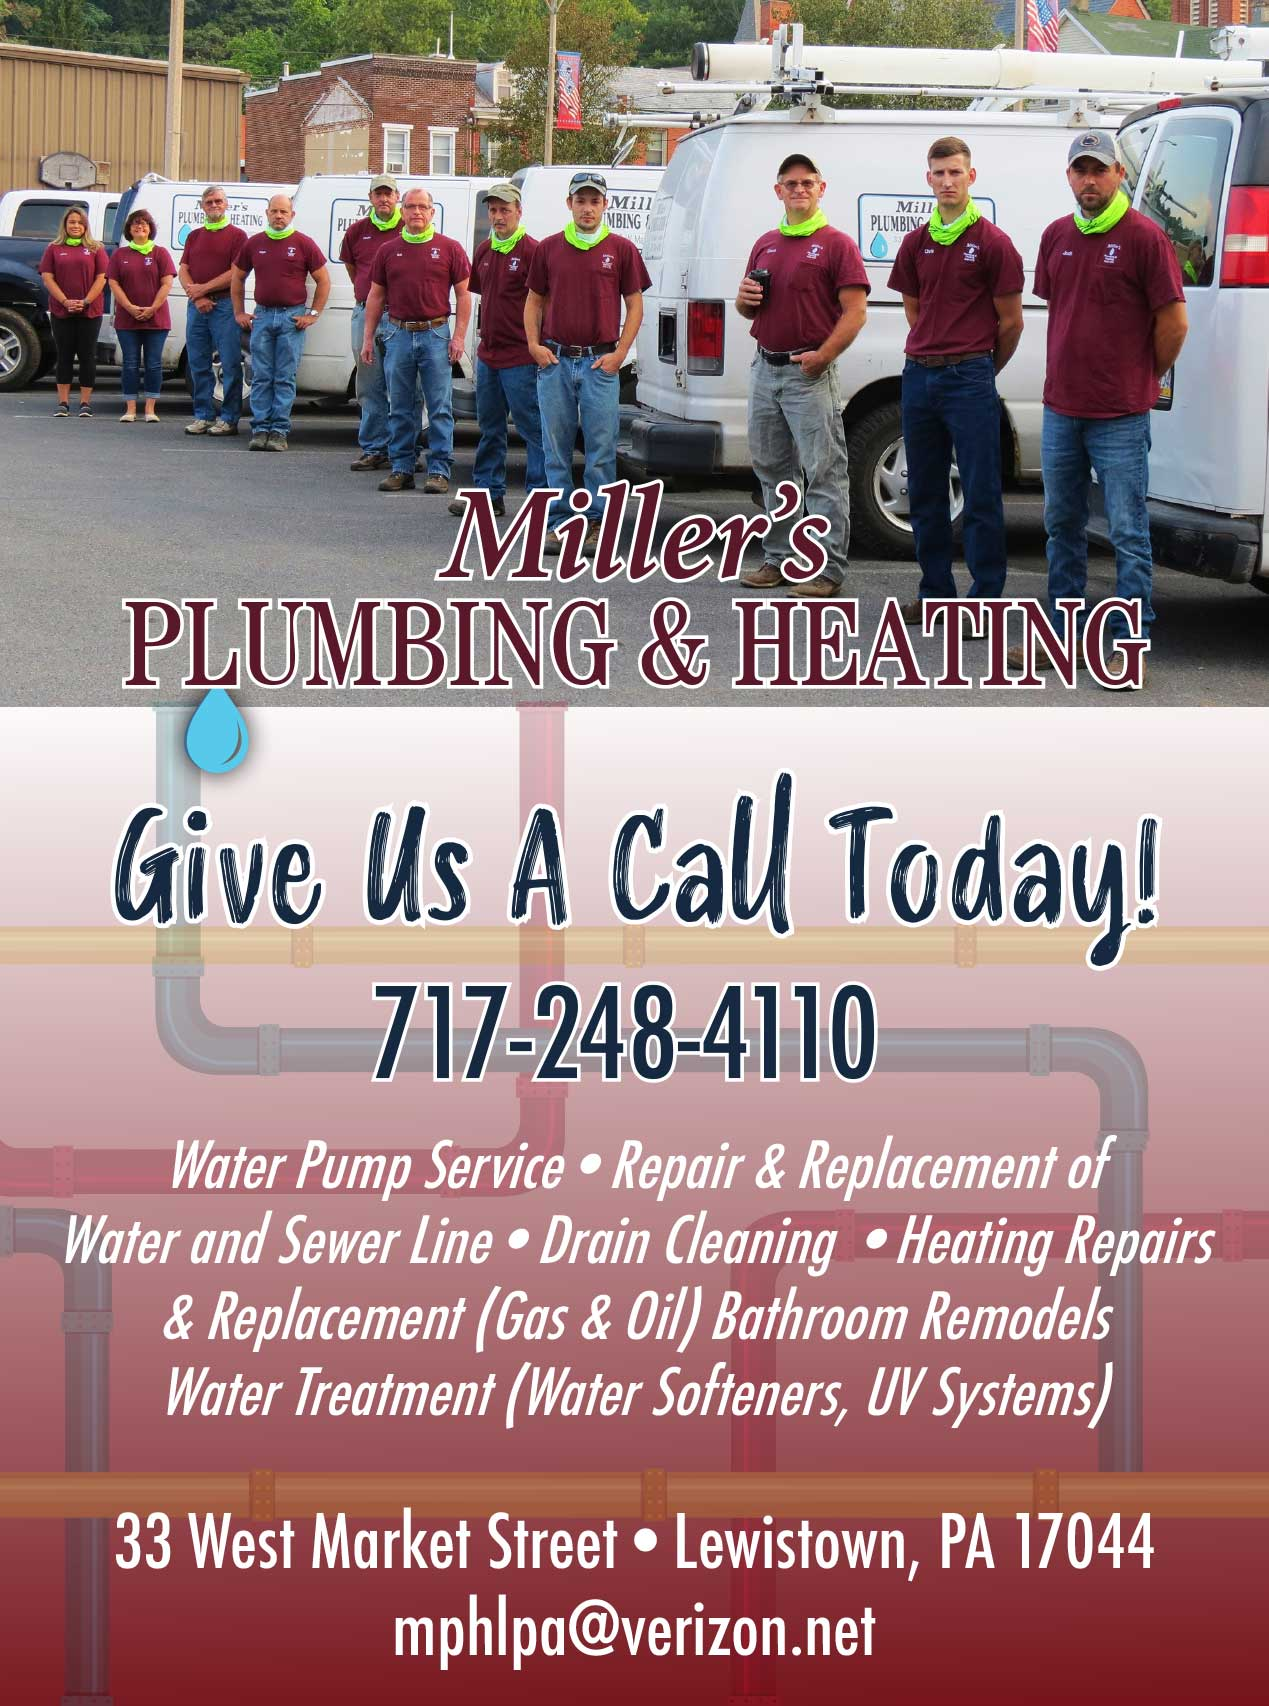 "<center>Miller's Plumbing and Heating of Lewistown, Inc. | <b><a href=""http://millers-heating.edan.io"" target=""_blank"" rel=""noopener noreferrer"">CLICK HERE to view the website</a></b></center>"